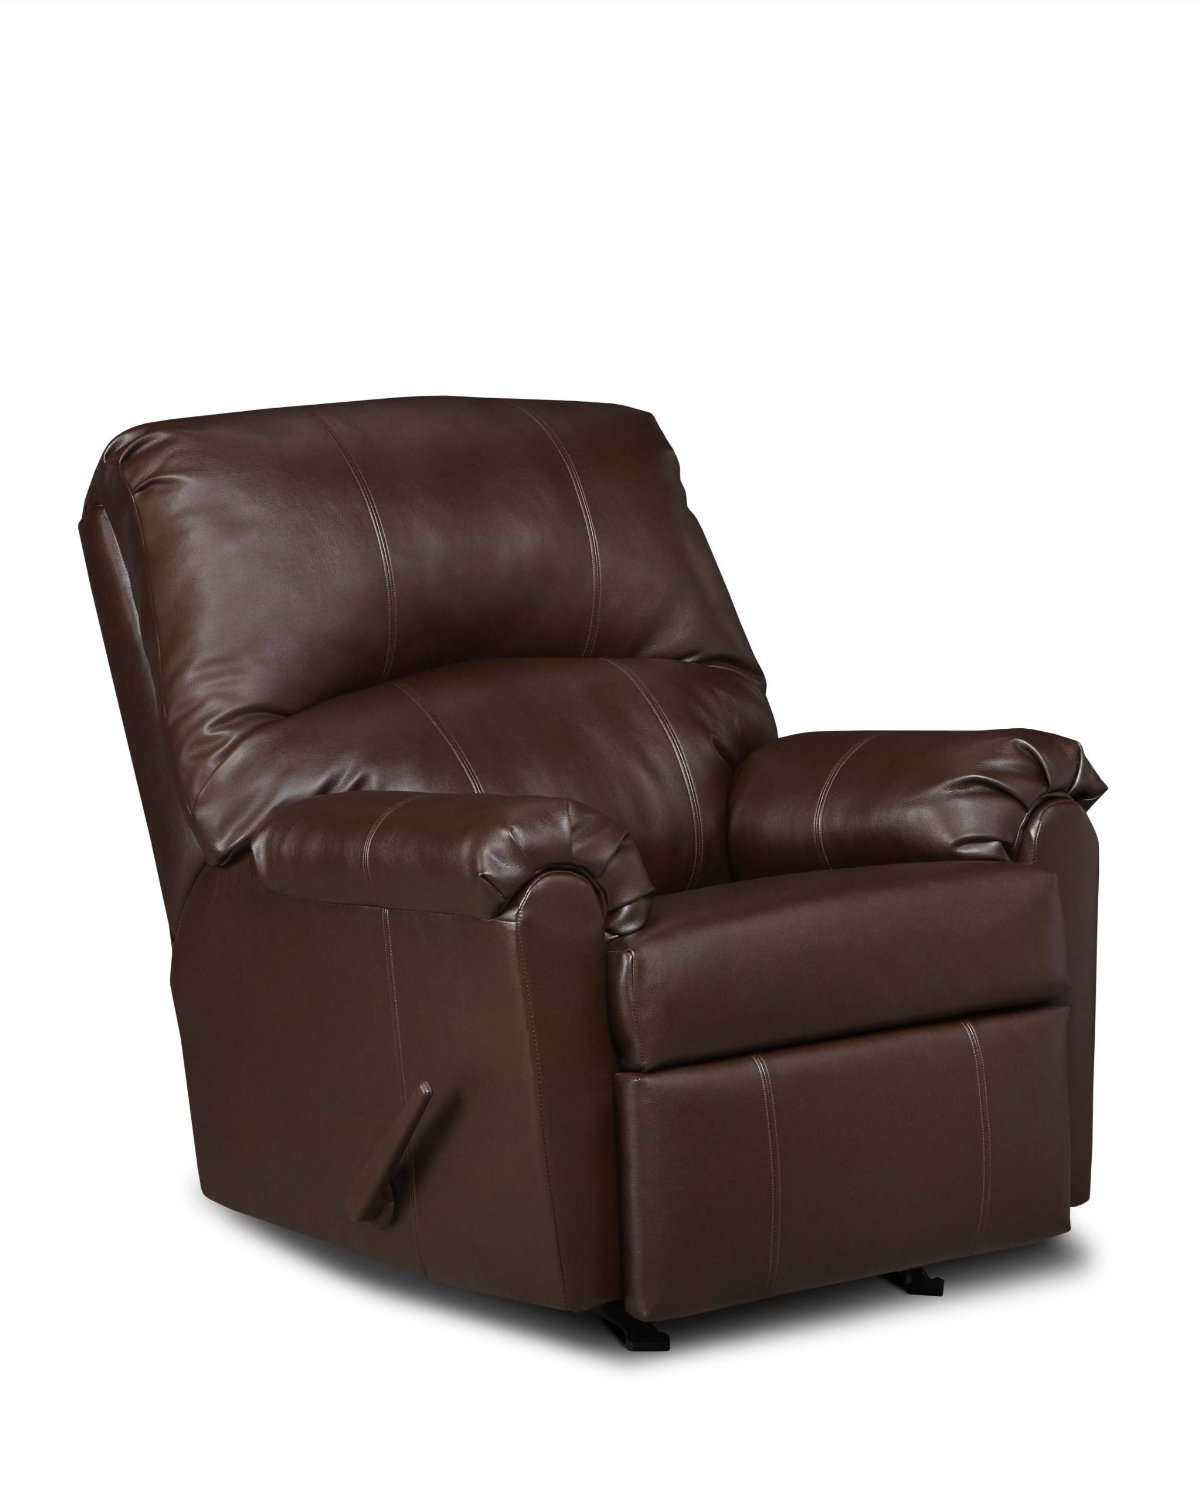 wall-hugger-recliner